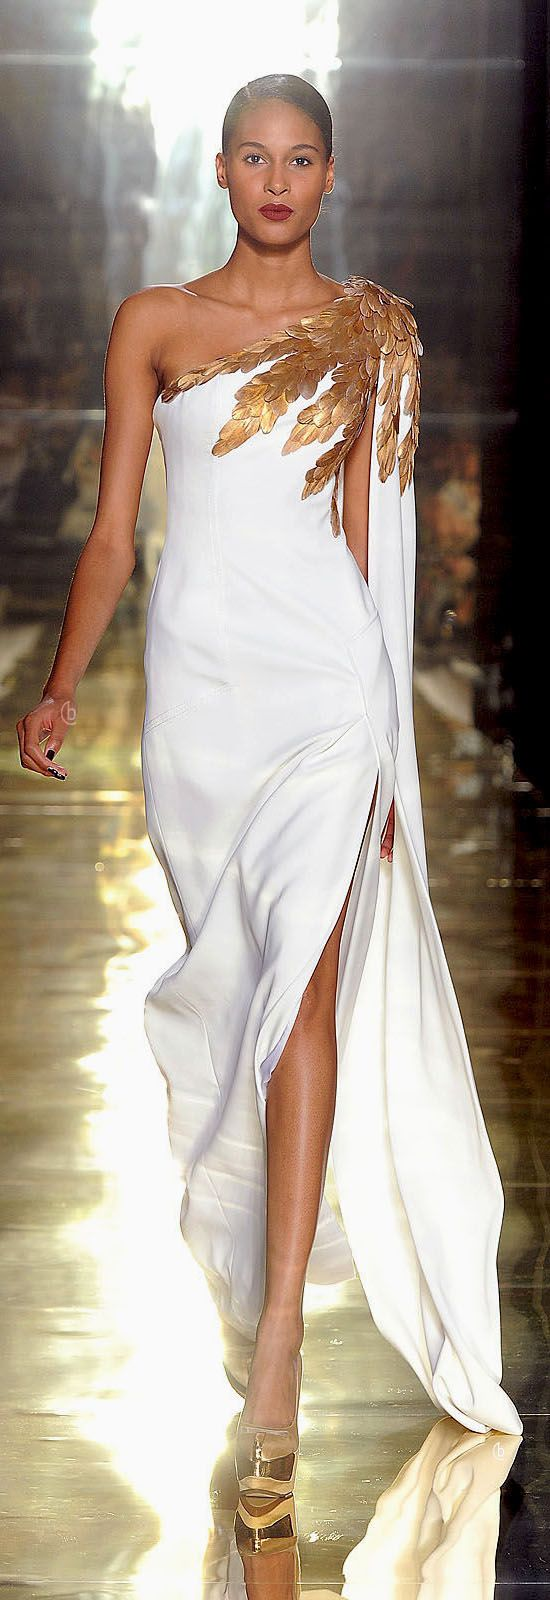 Ancient Greece influence modern day designers, creating a one shoulder garment like a himation and then adding a royal gold detailing: Georges Chakra, un rendez-vous magique